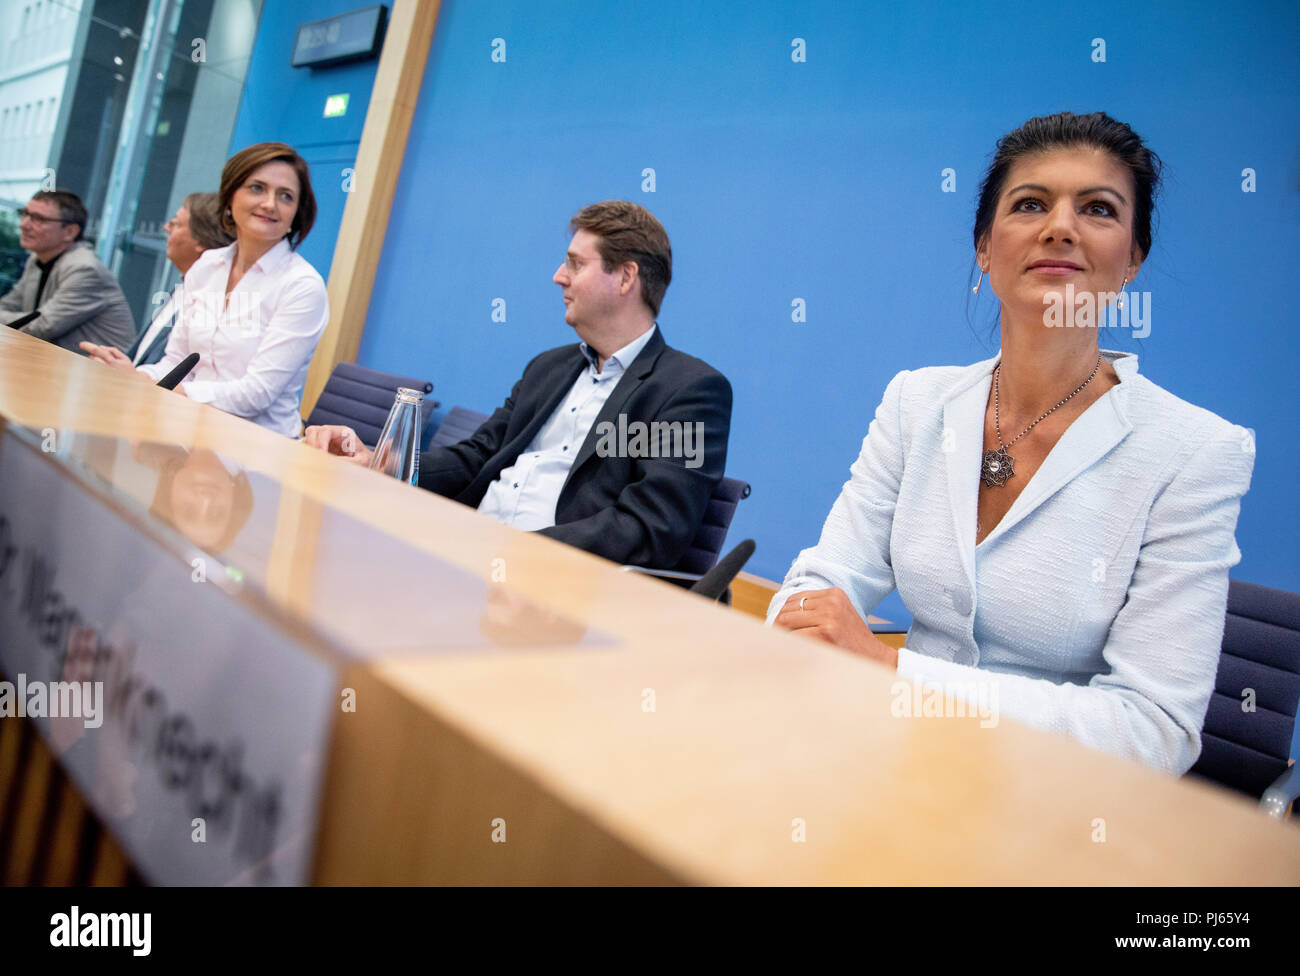 """04.09.2018, Berlin: Sahra Wagenknecht (r-l), Chairwoman of the parliamentary group of the party Die Linke(The Left), Ludger Volmer (Alliance 90/The Greens), Simone Lange of the Social Democratic Party (SPD), Lord Mayor of Flensburg, Bernd Stegemann, author and dramaturg, and Hans Albers officially present the movement """"Standing Up"""" at the federal press conference. Unlike political parties, supporters of """"Standing Up"""" do not have to pay a membership fee and can simply register on the Internet. Photo: Bernd von Jutrczenka/dpa Stock Photo"""